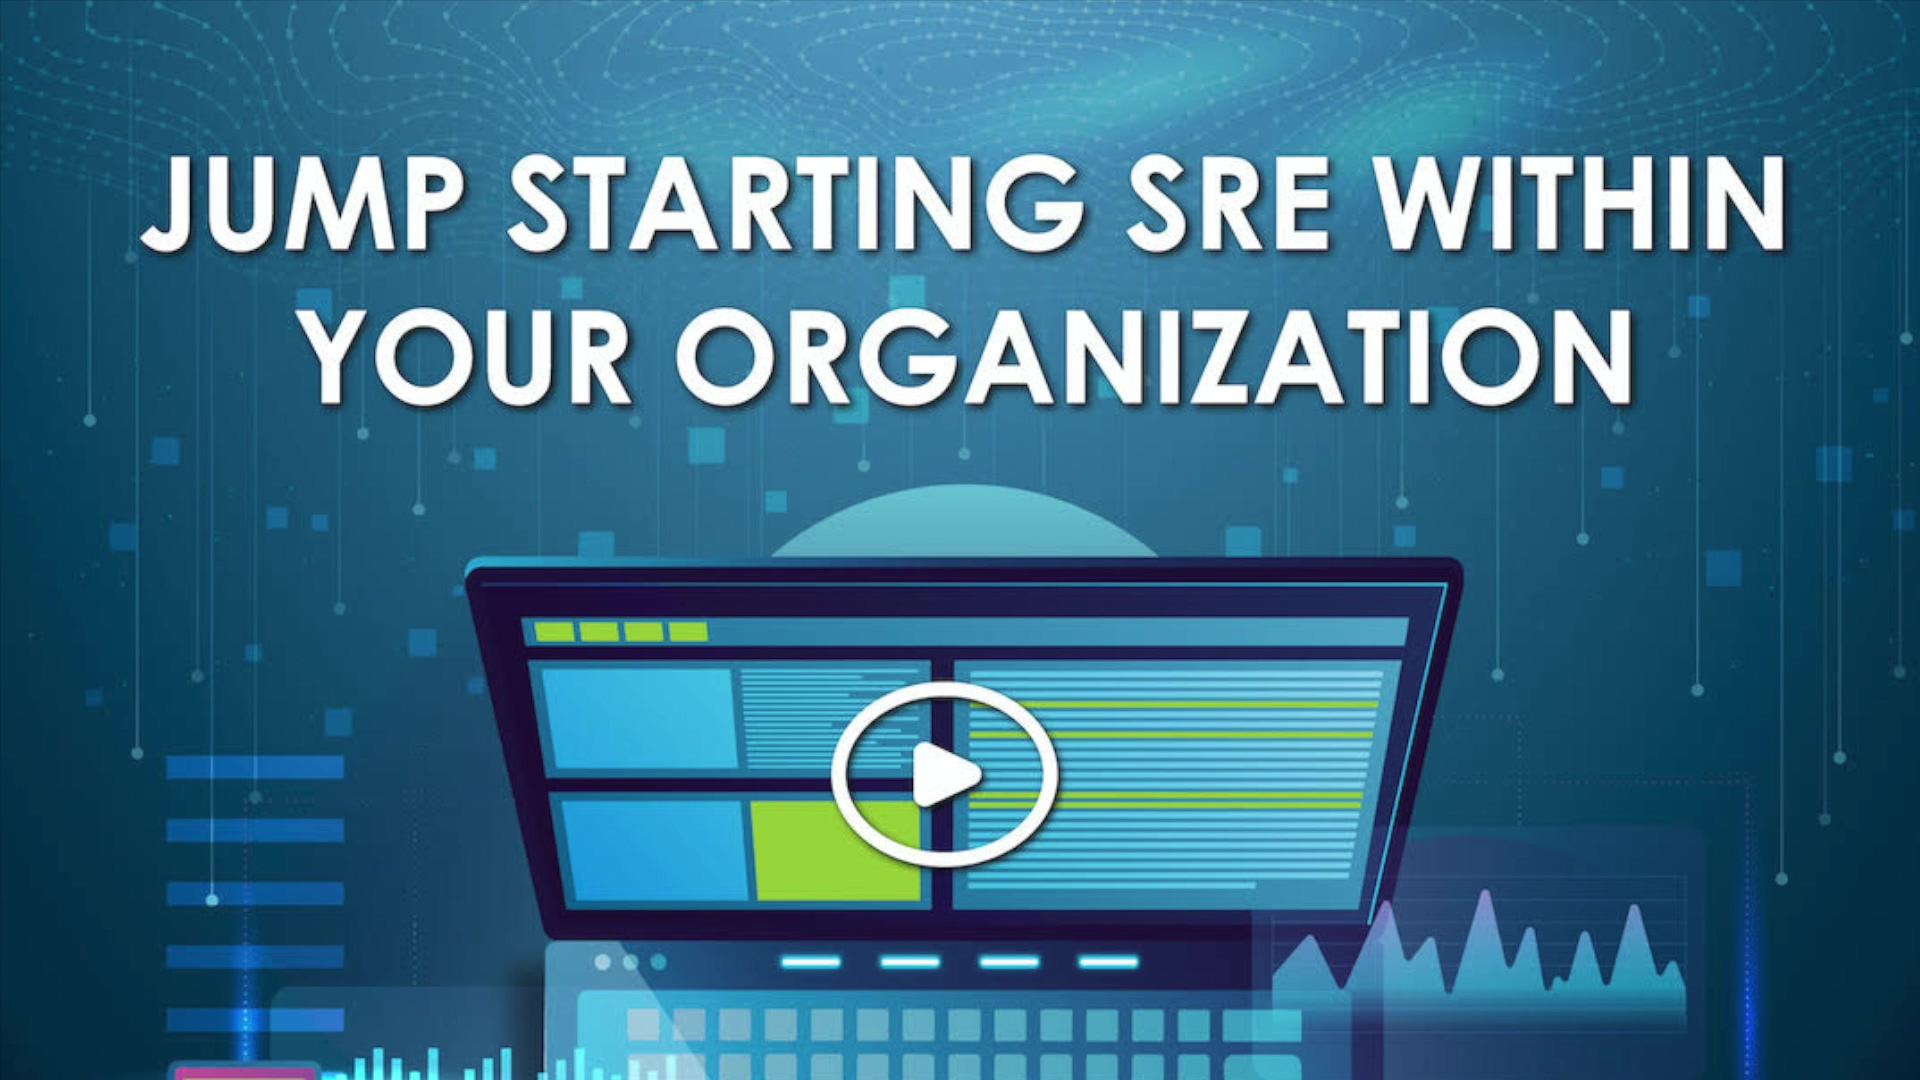 Jump Starting SRE Within Your Organization